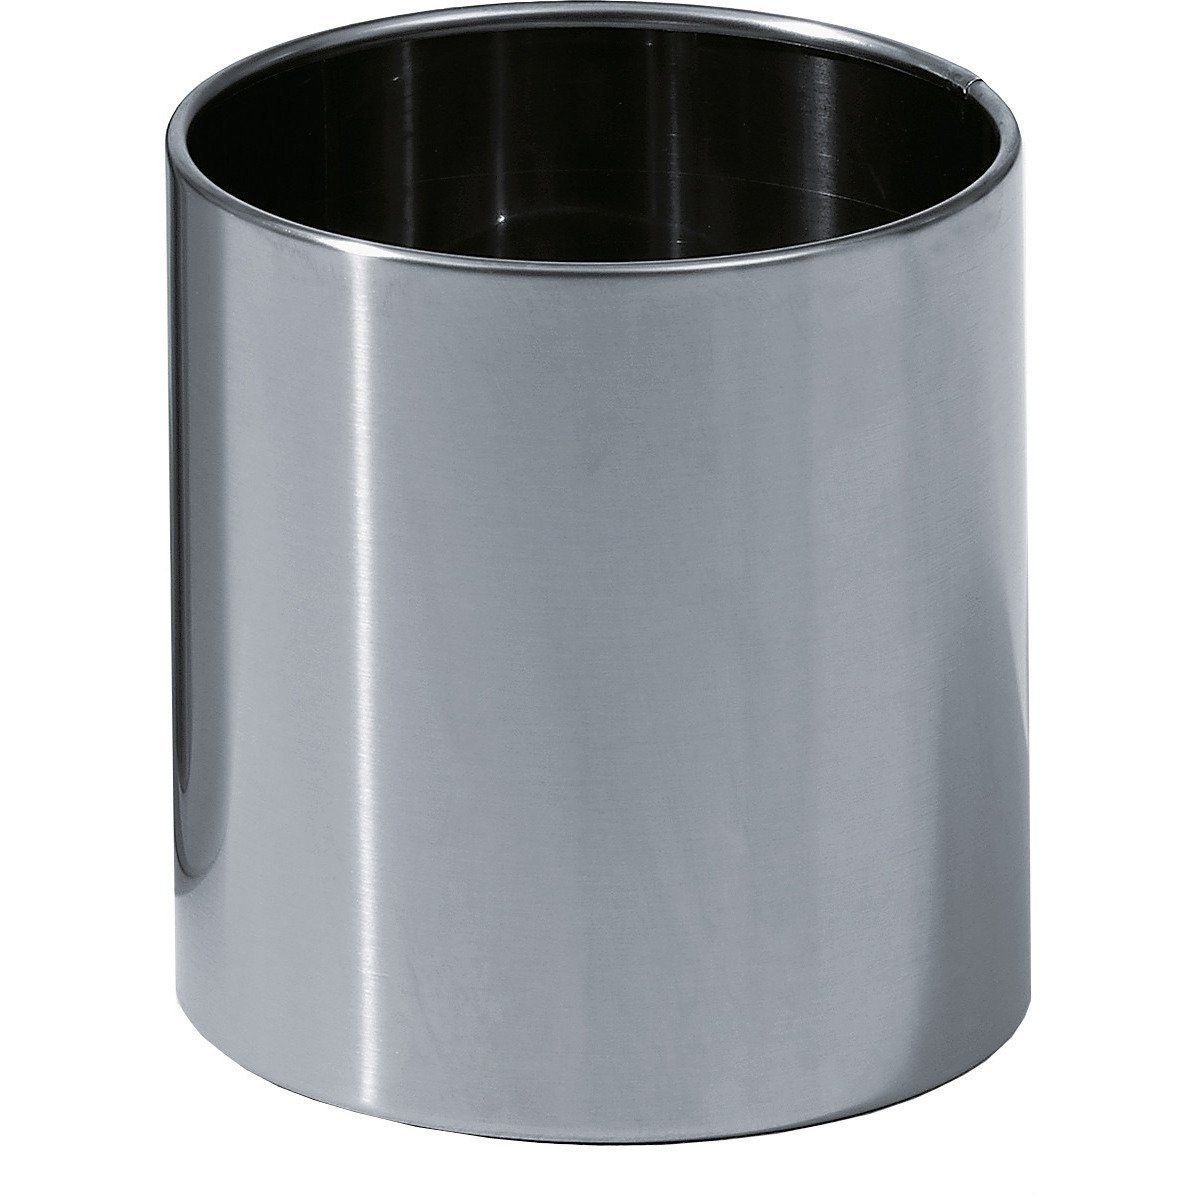 Dw 105 Round Open Top Trash Can Stainless Steel Wastebasket W O